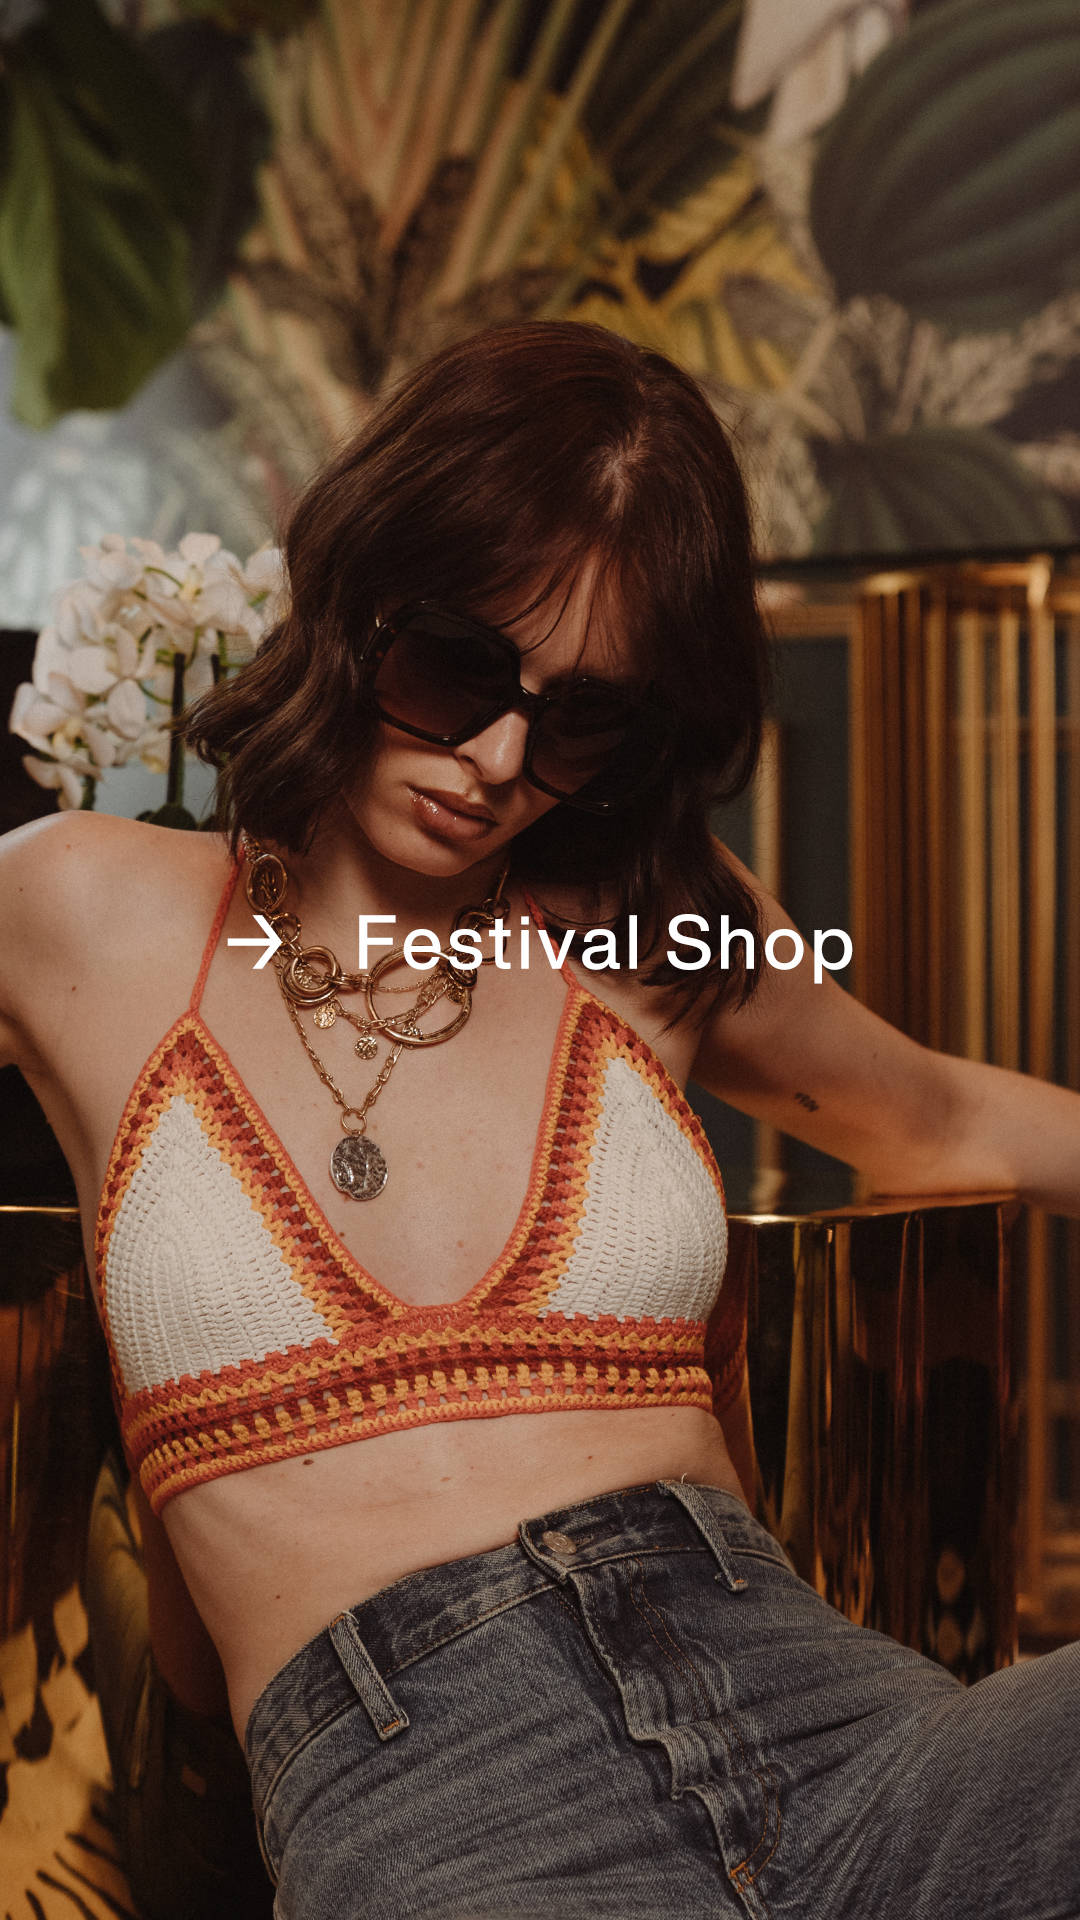 Festival Shop: Brighter than the stage lights.